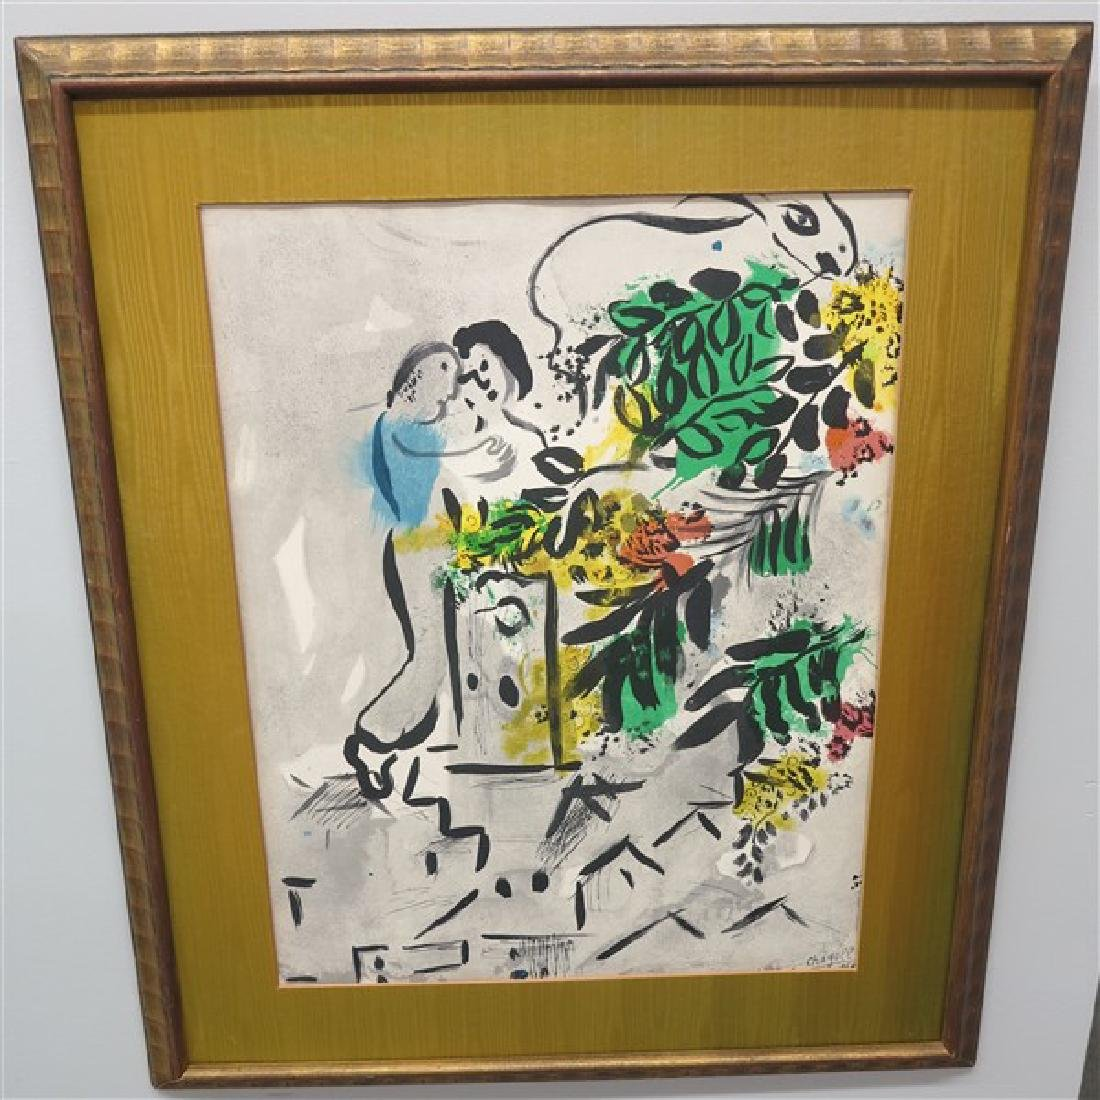 2 Framed Chagall Style Prints